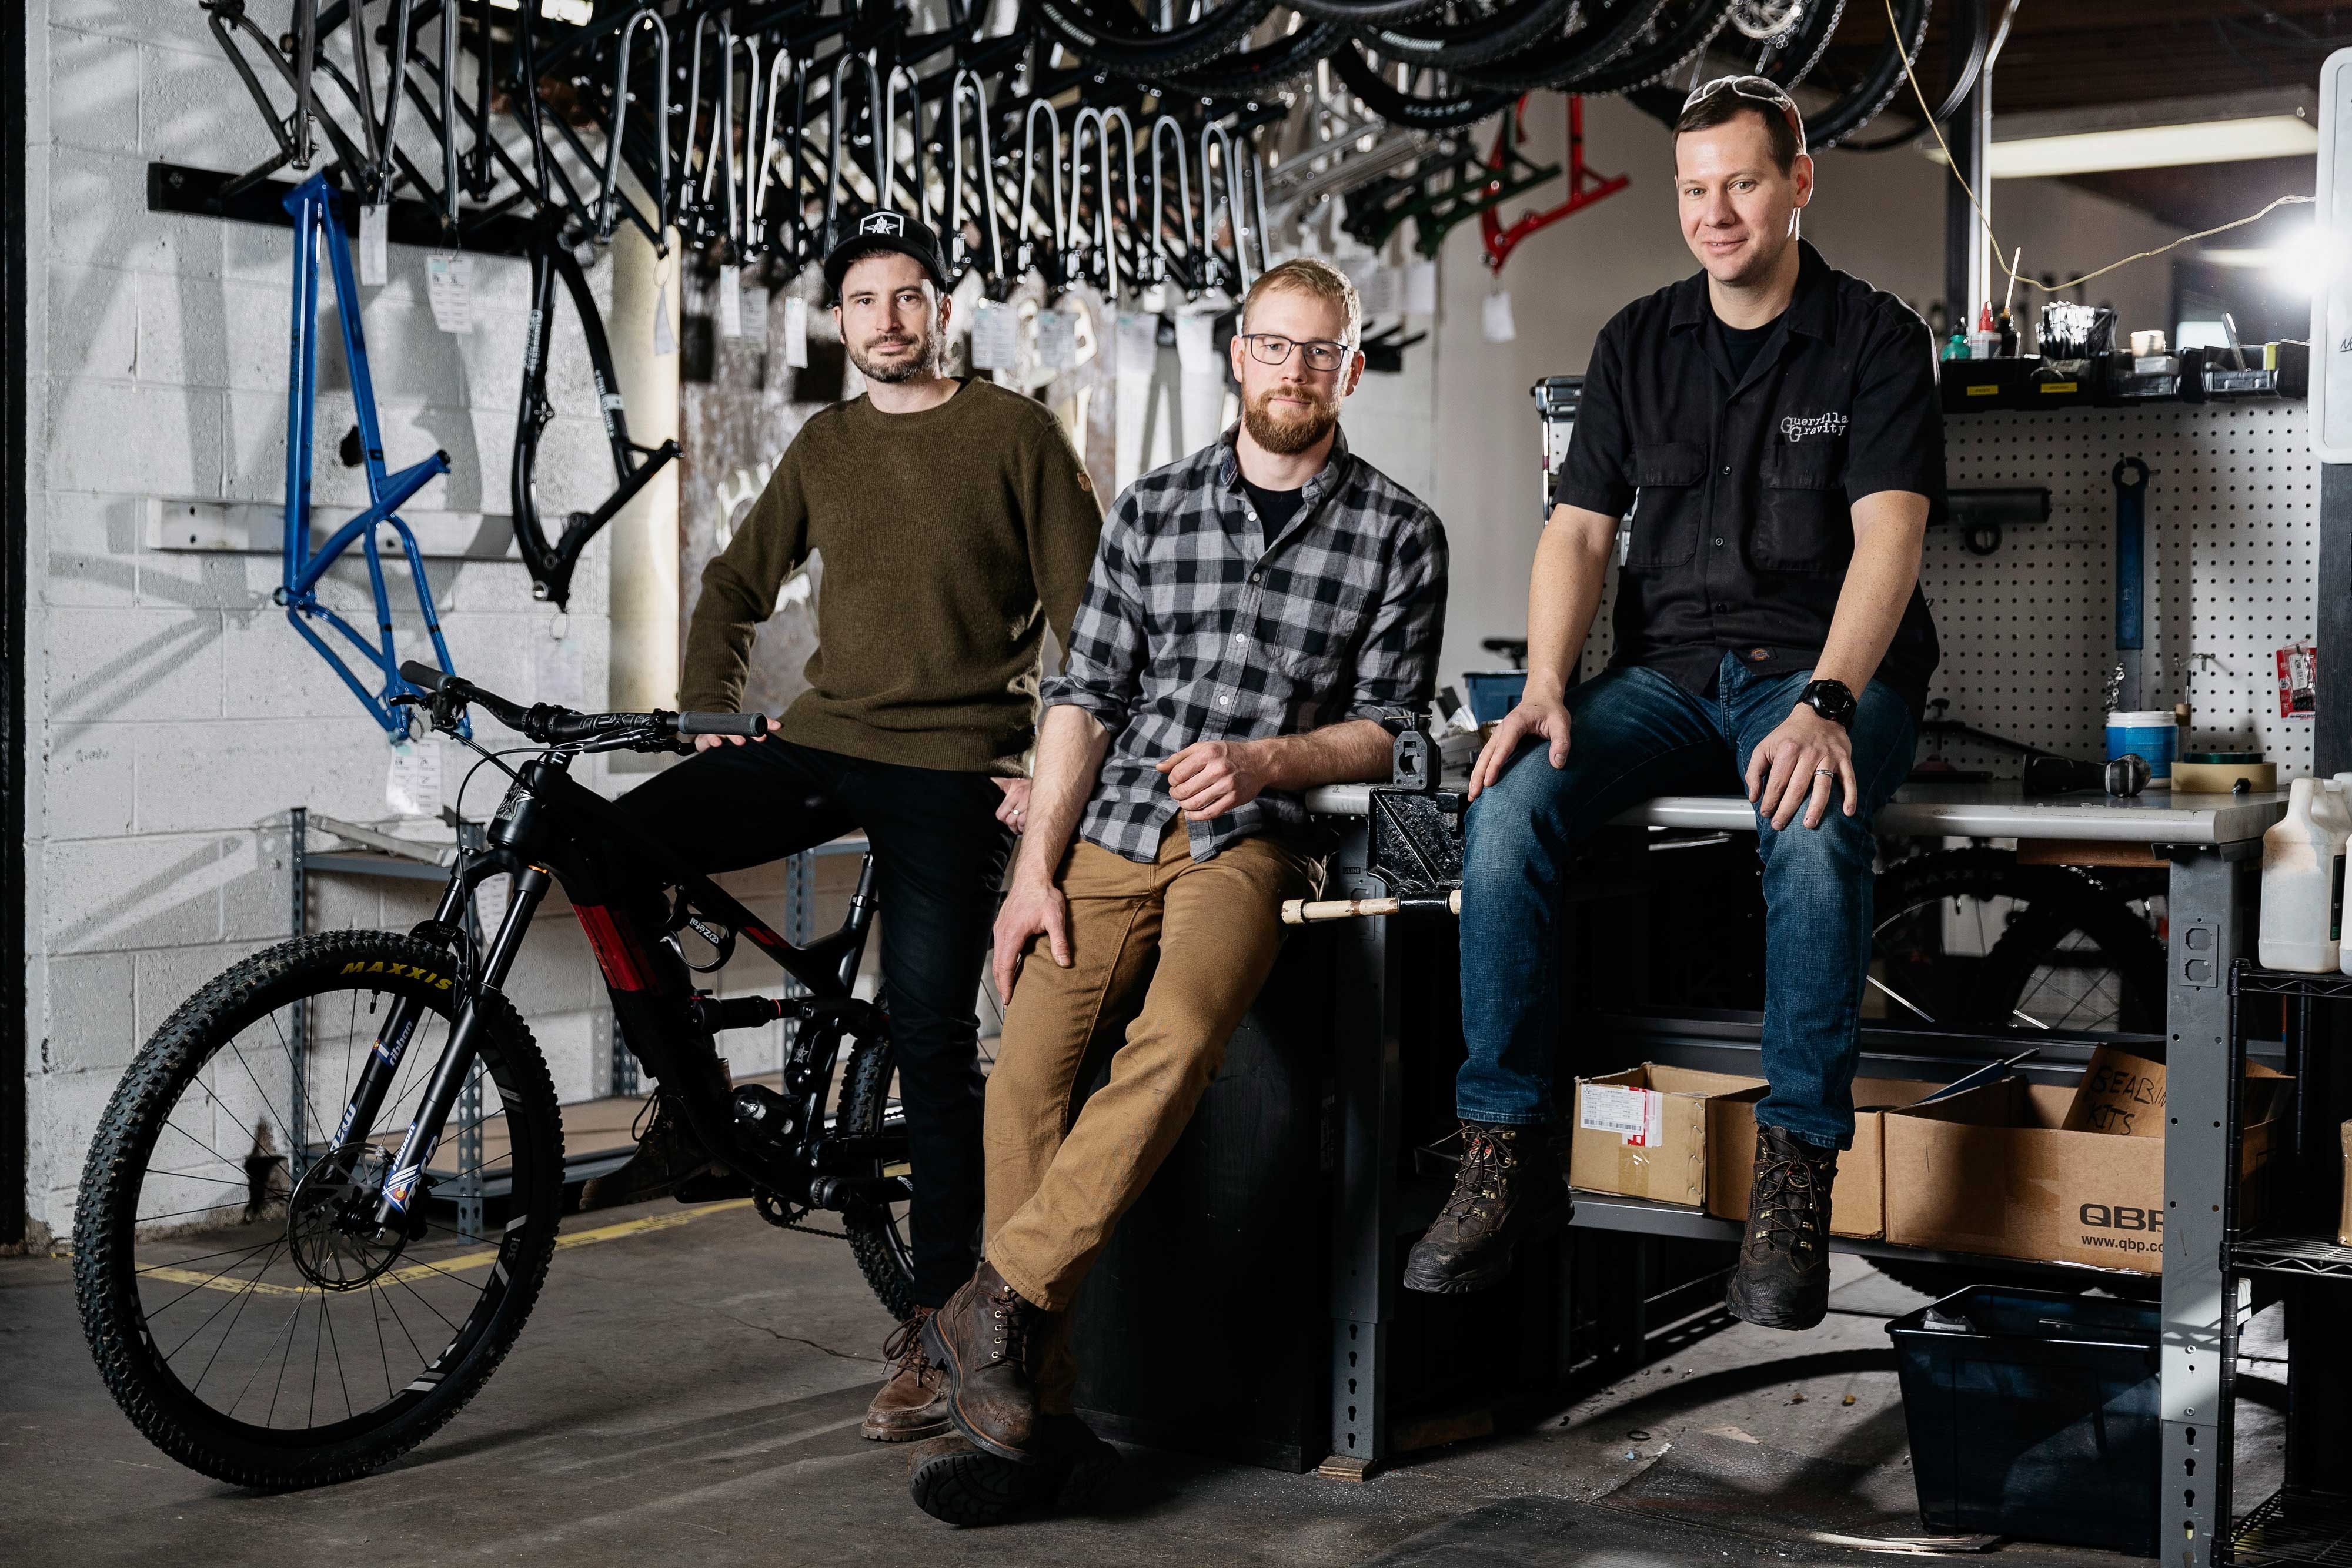 How Guerrilla Gravity Manufactures a Made-In-the-USA Carbon Frame for Less Than Big Bike Brands